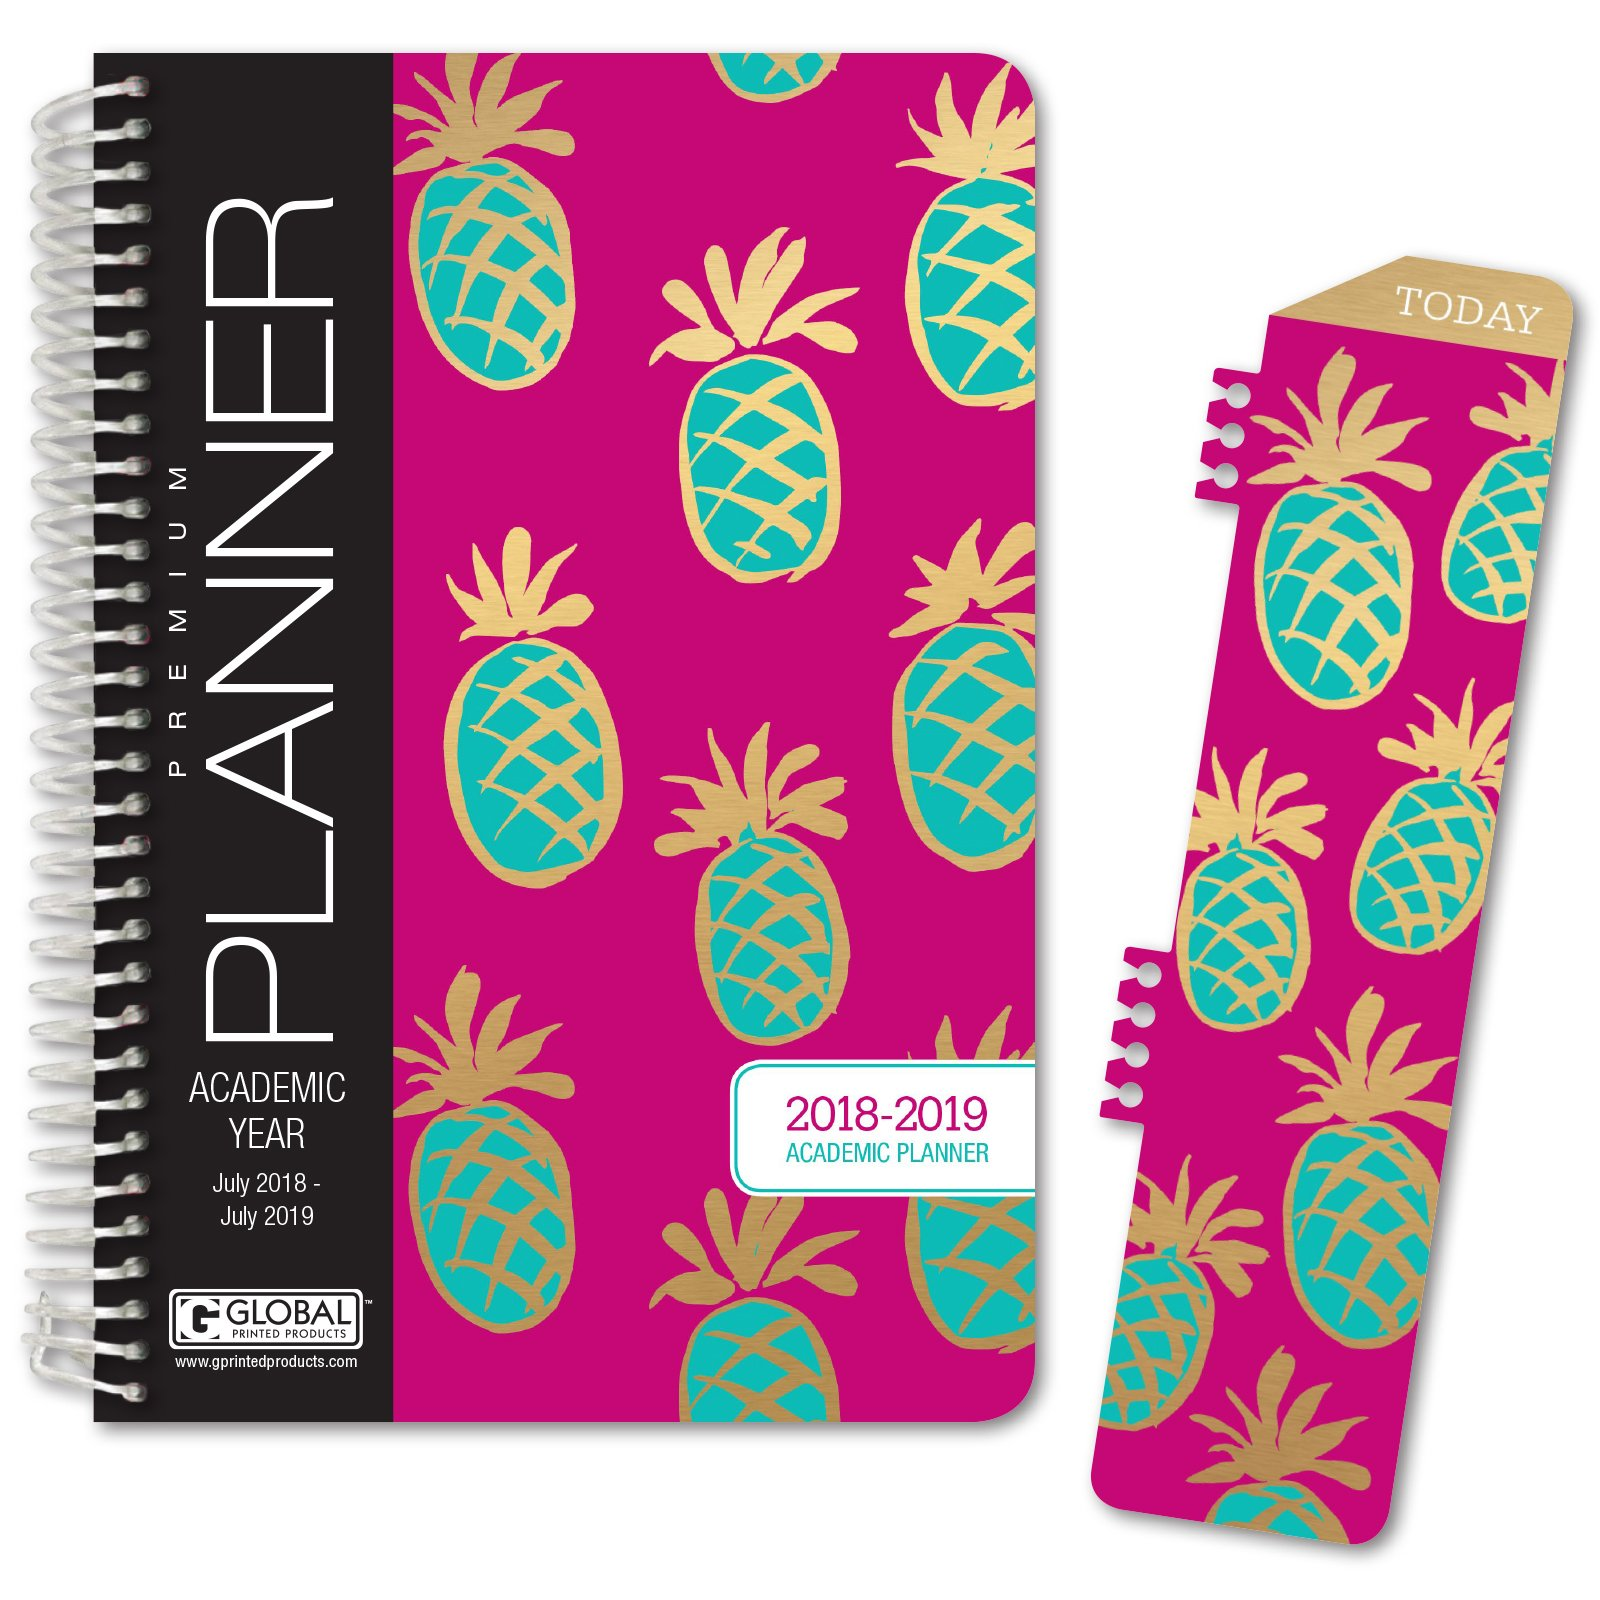 HARDCOVER Academic Year Planner 2018-2019 - 5.5''x8'' Daily Planner / Weekly Planner / Monthly Planner / Yearly Agenda. Bonus CLIP-IN BOOKMARK (Pineapples)